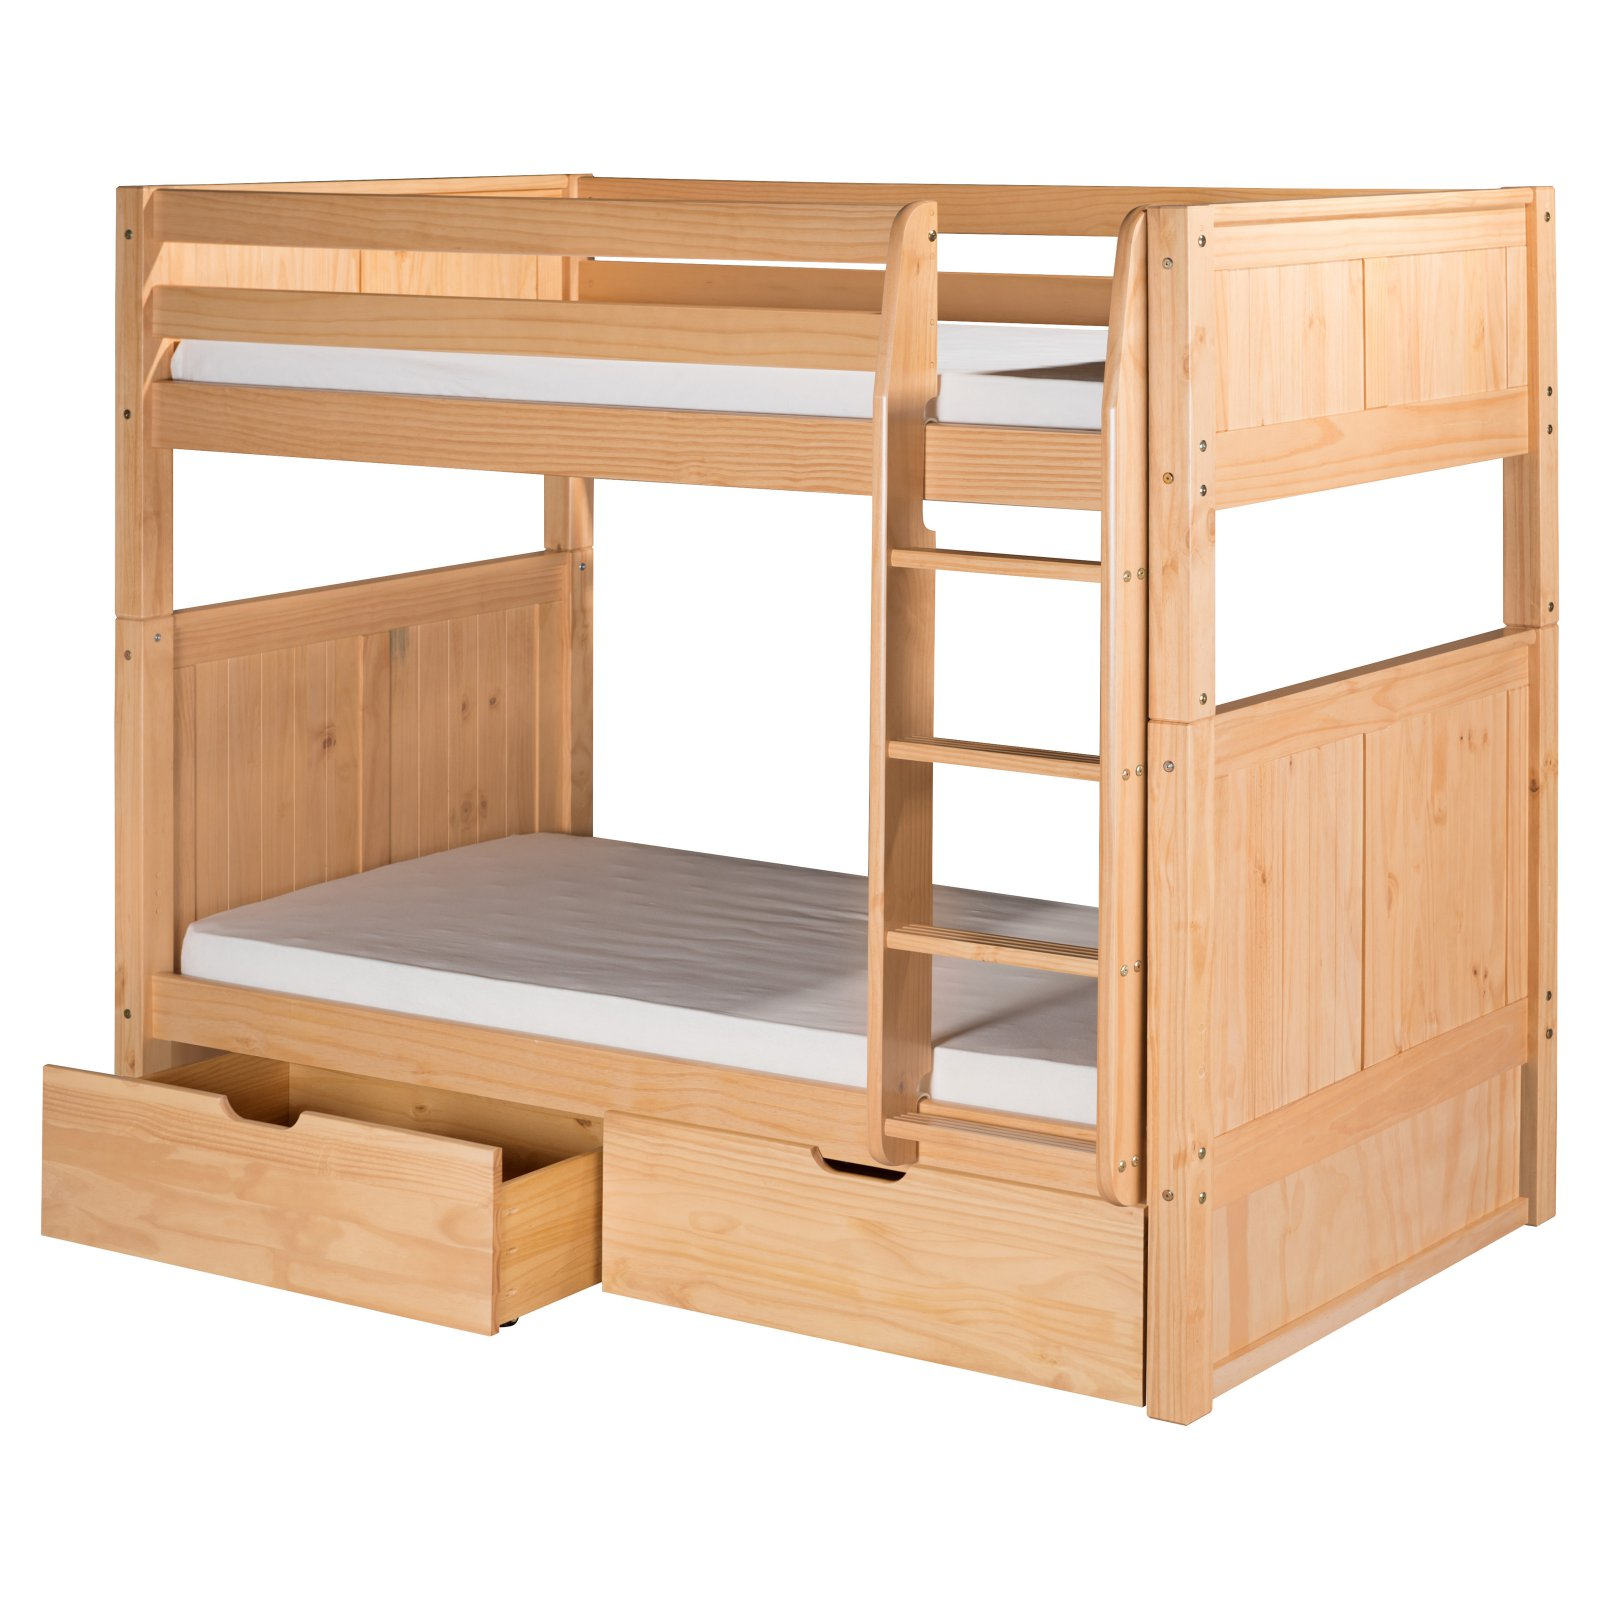 Camaflexi Twin over Twin Bunk Bed with Drawers - Panel Headboard - Natural Finish